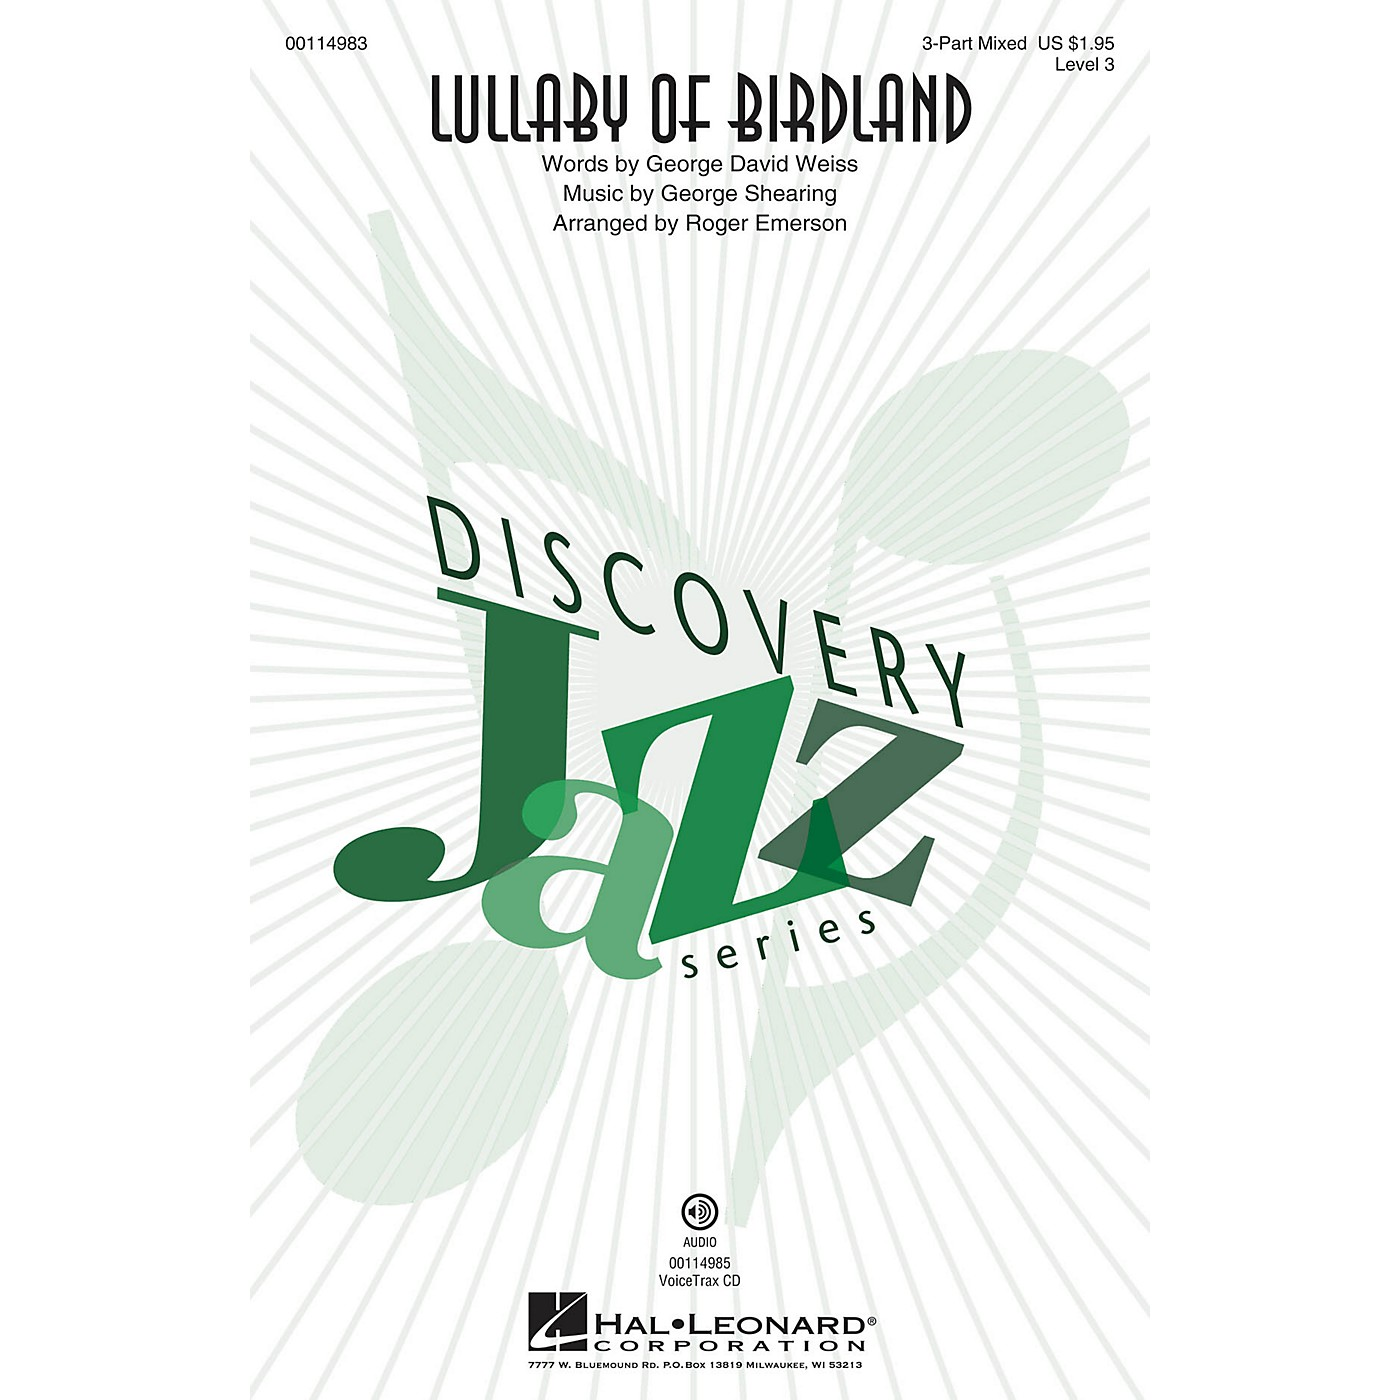 Hal Leonard Lullaby Of Birdland (Discovery Level 3) VoiceTrax CD Arranged by Roger Emerson thumbnail